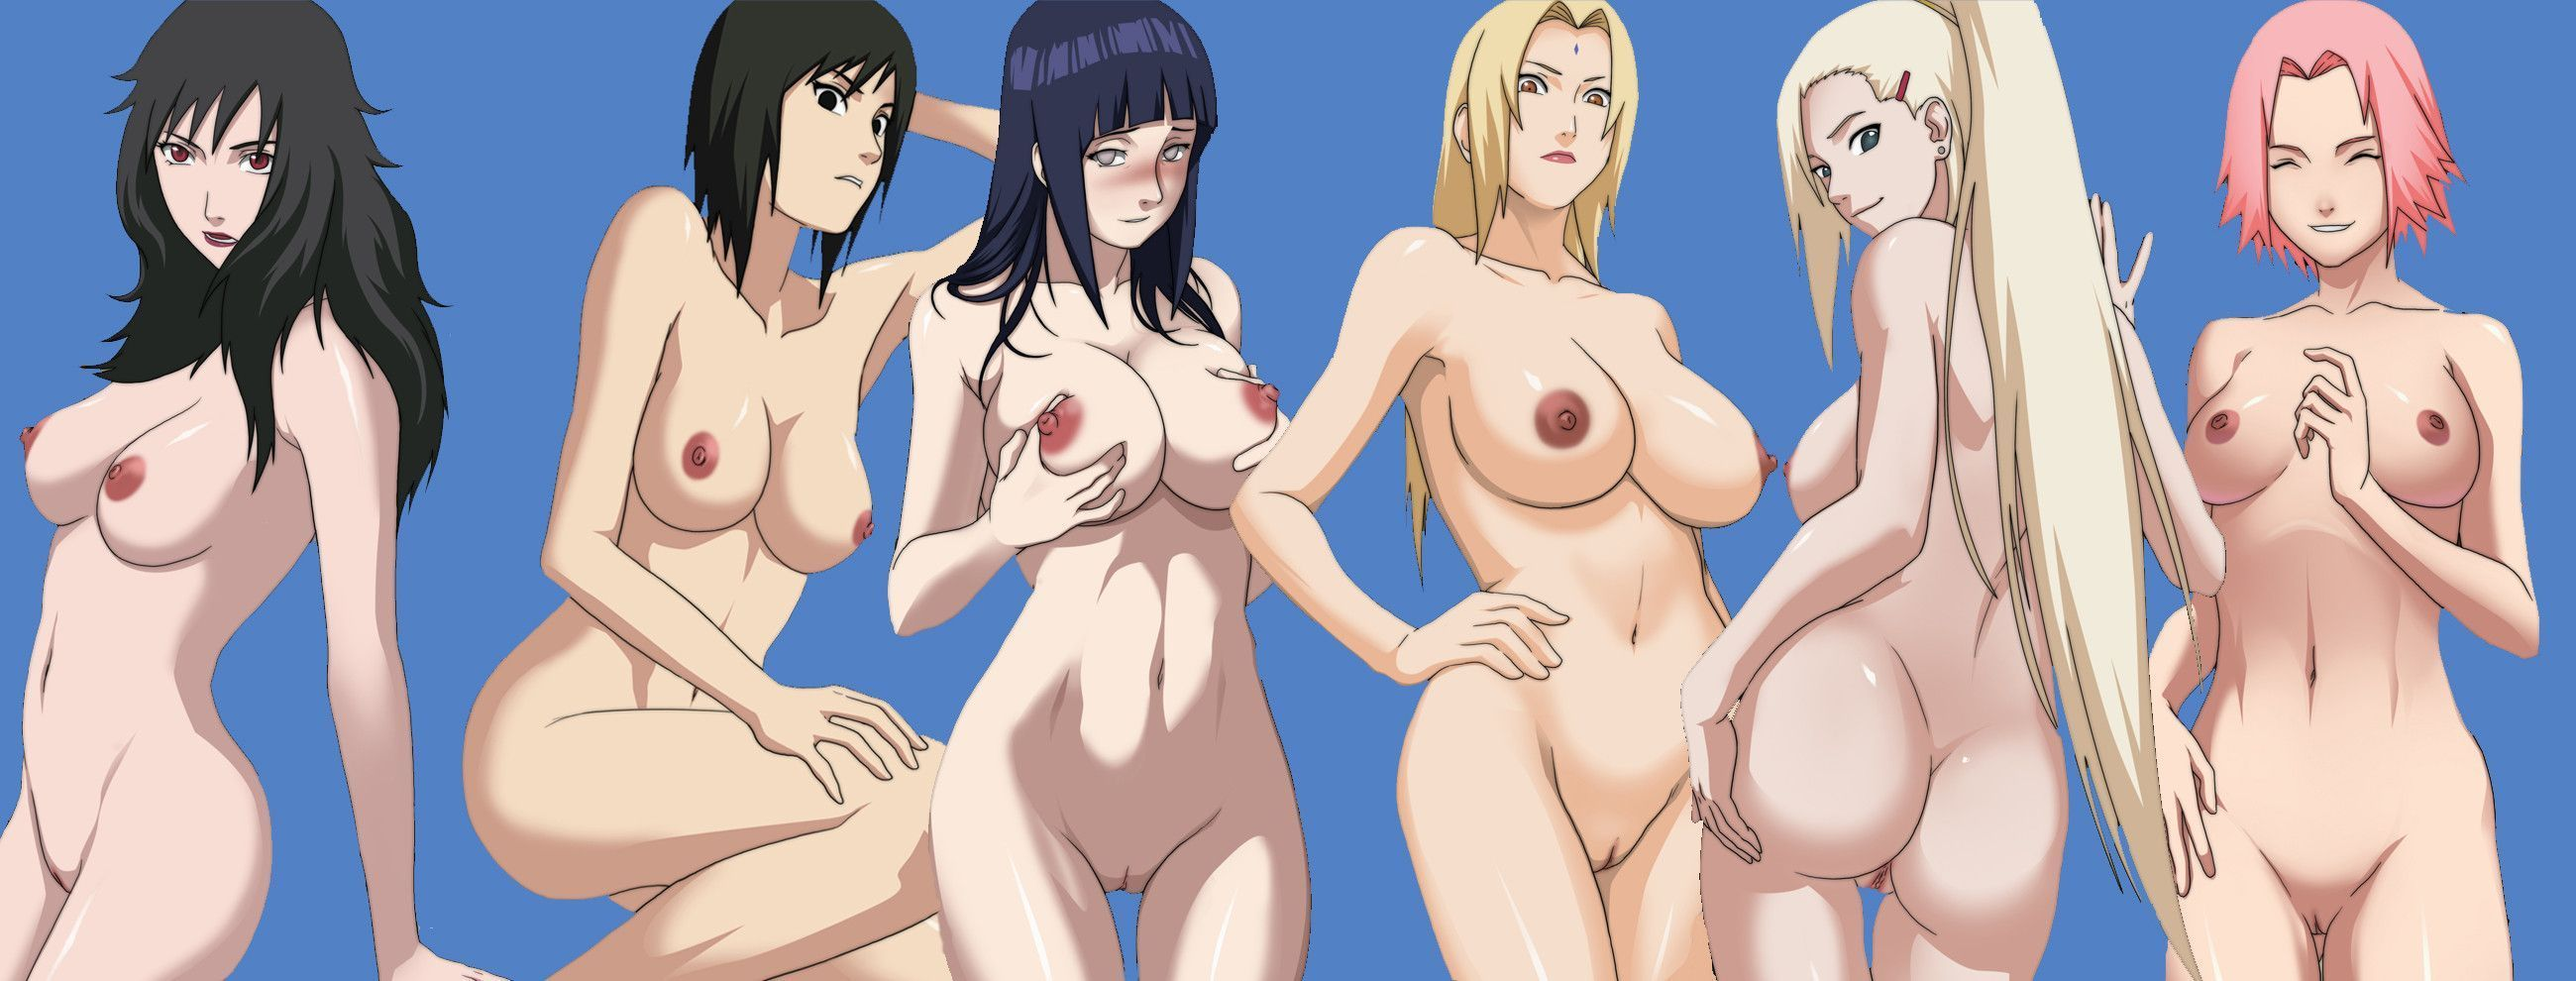 Girl the naruto naked